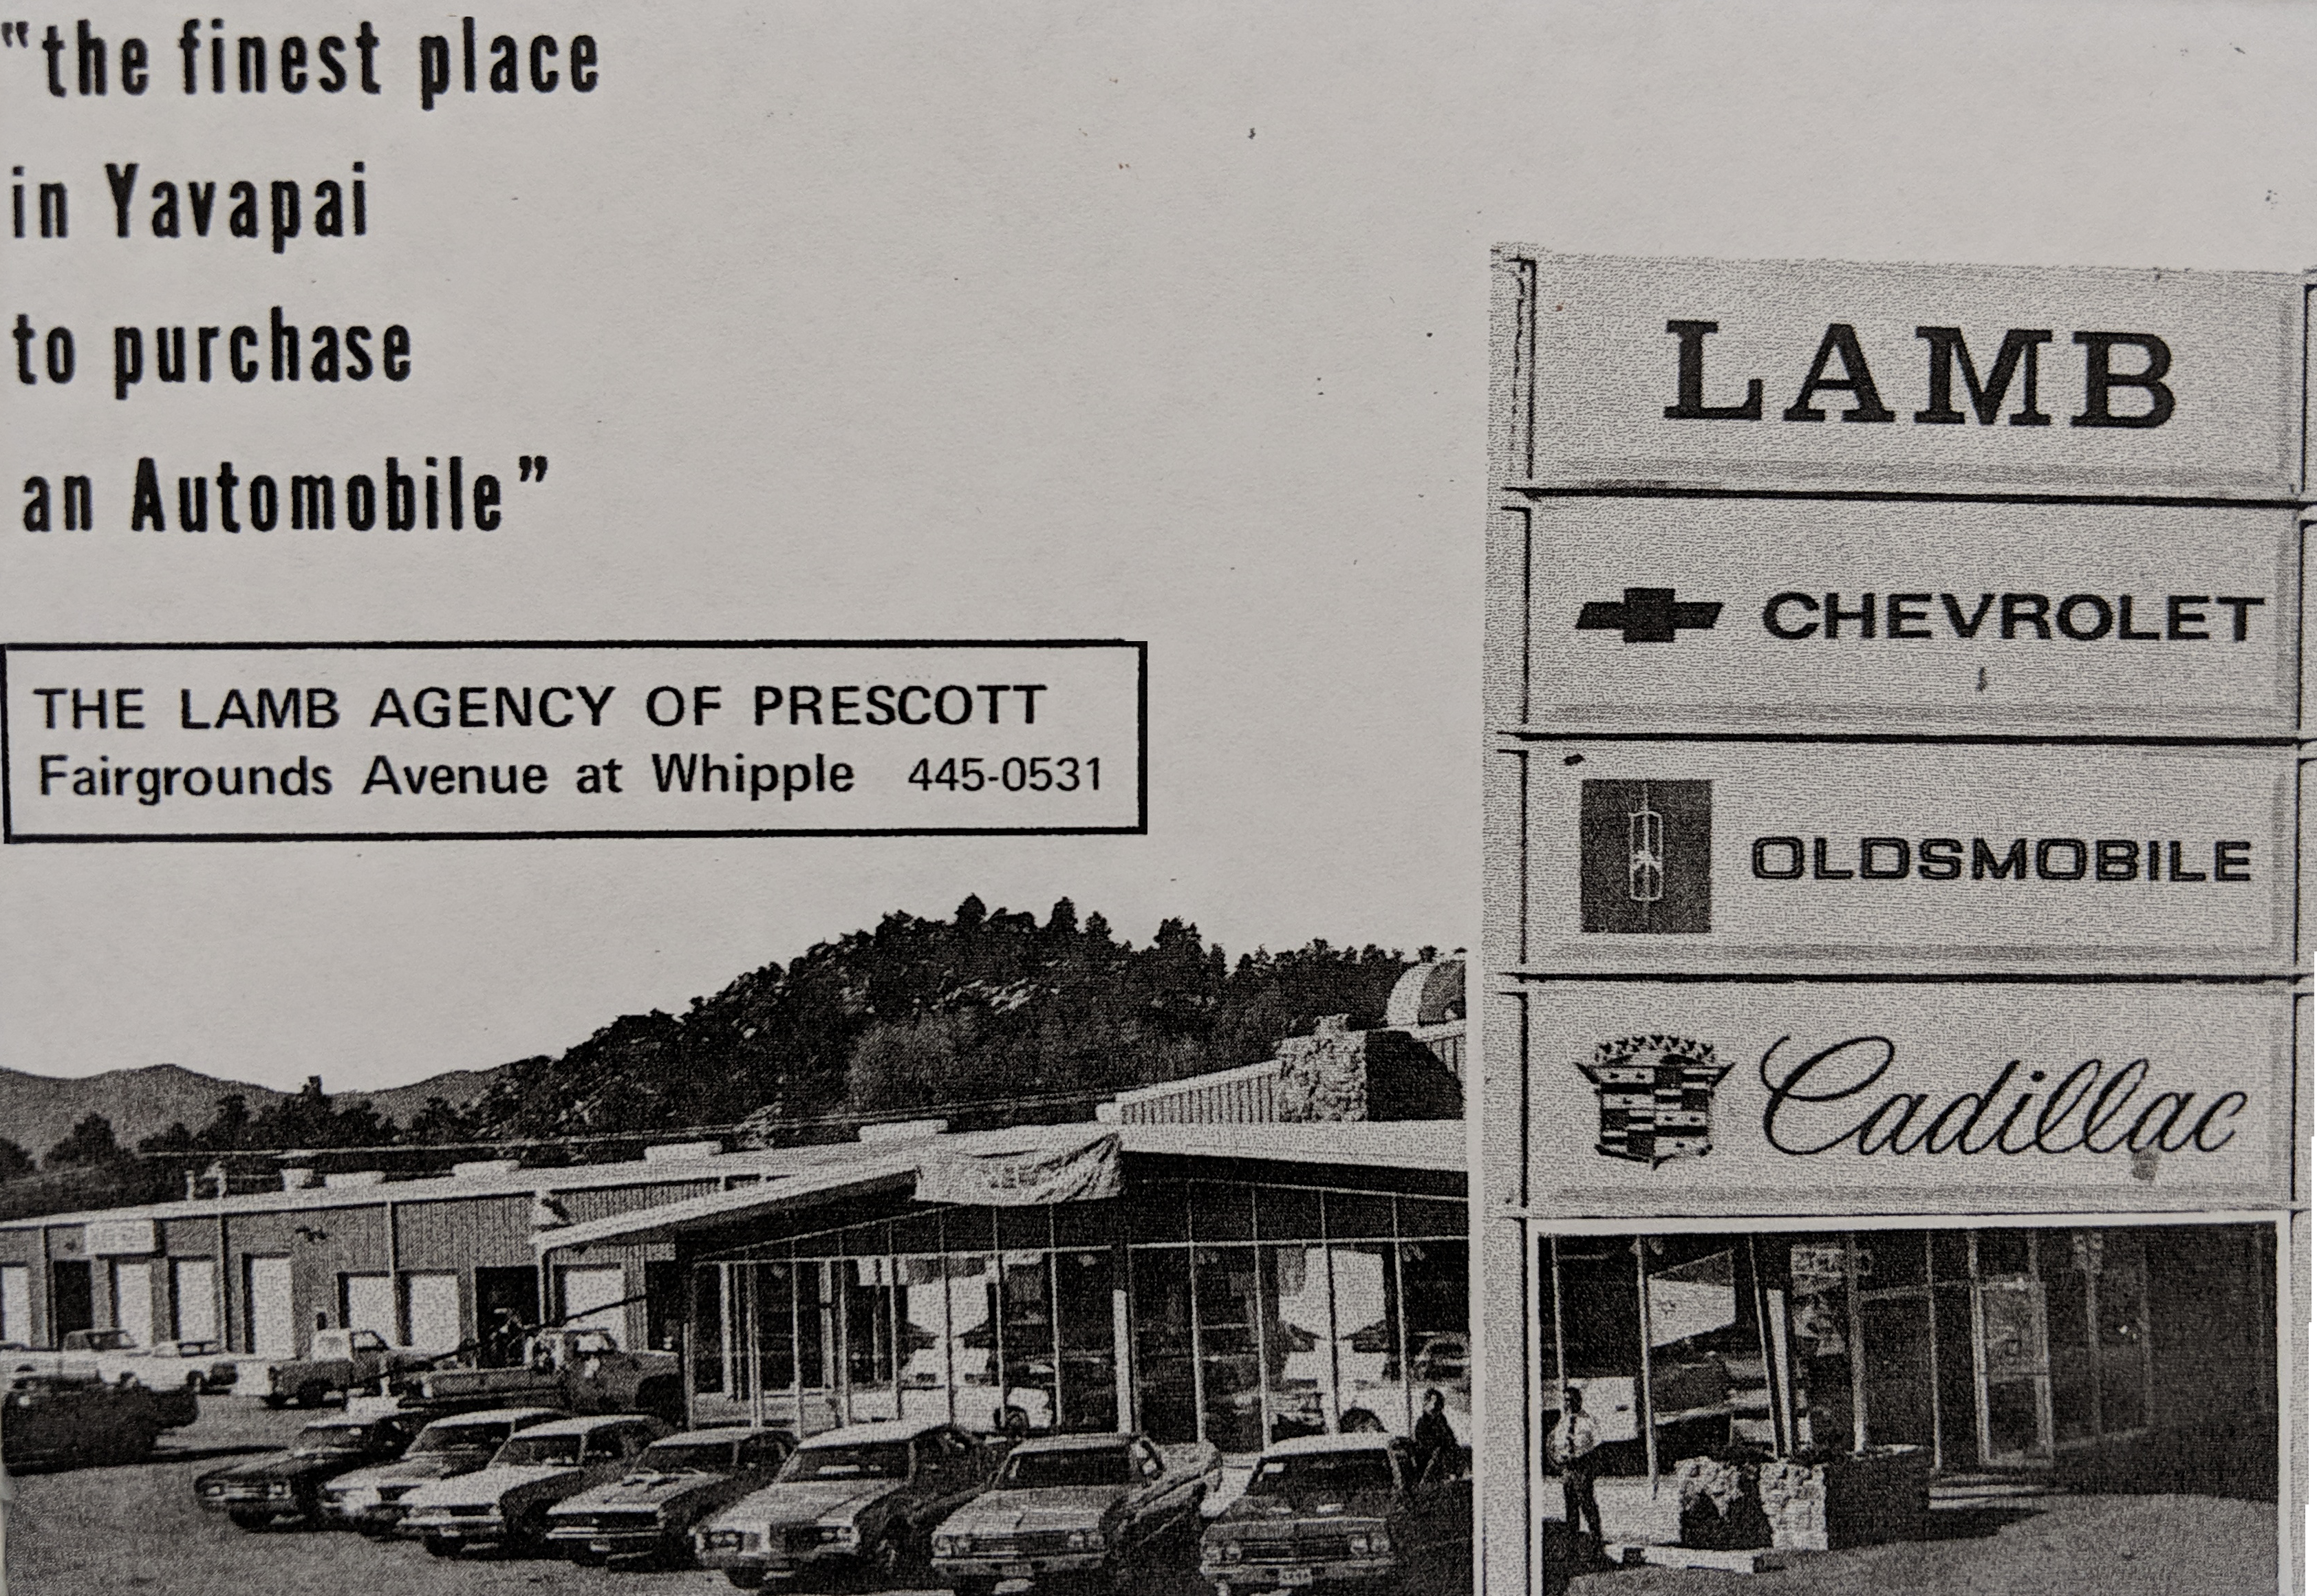 Lamb Chevrolet, Oldsmobile, Cadillac Original Dealership 1957